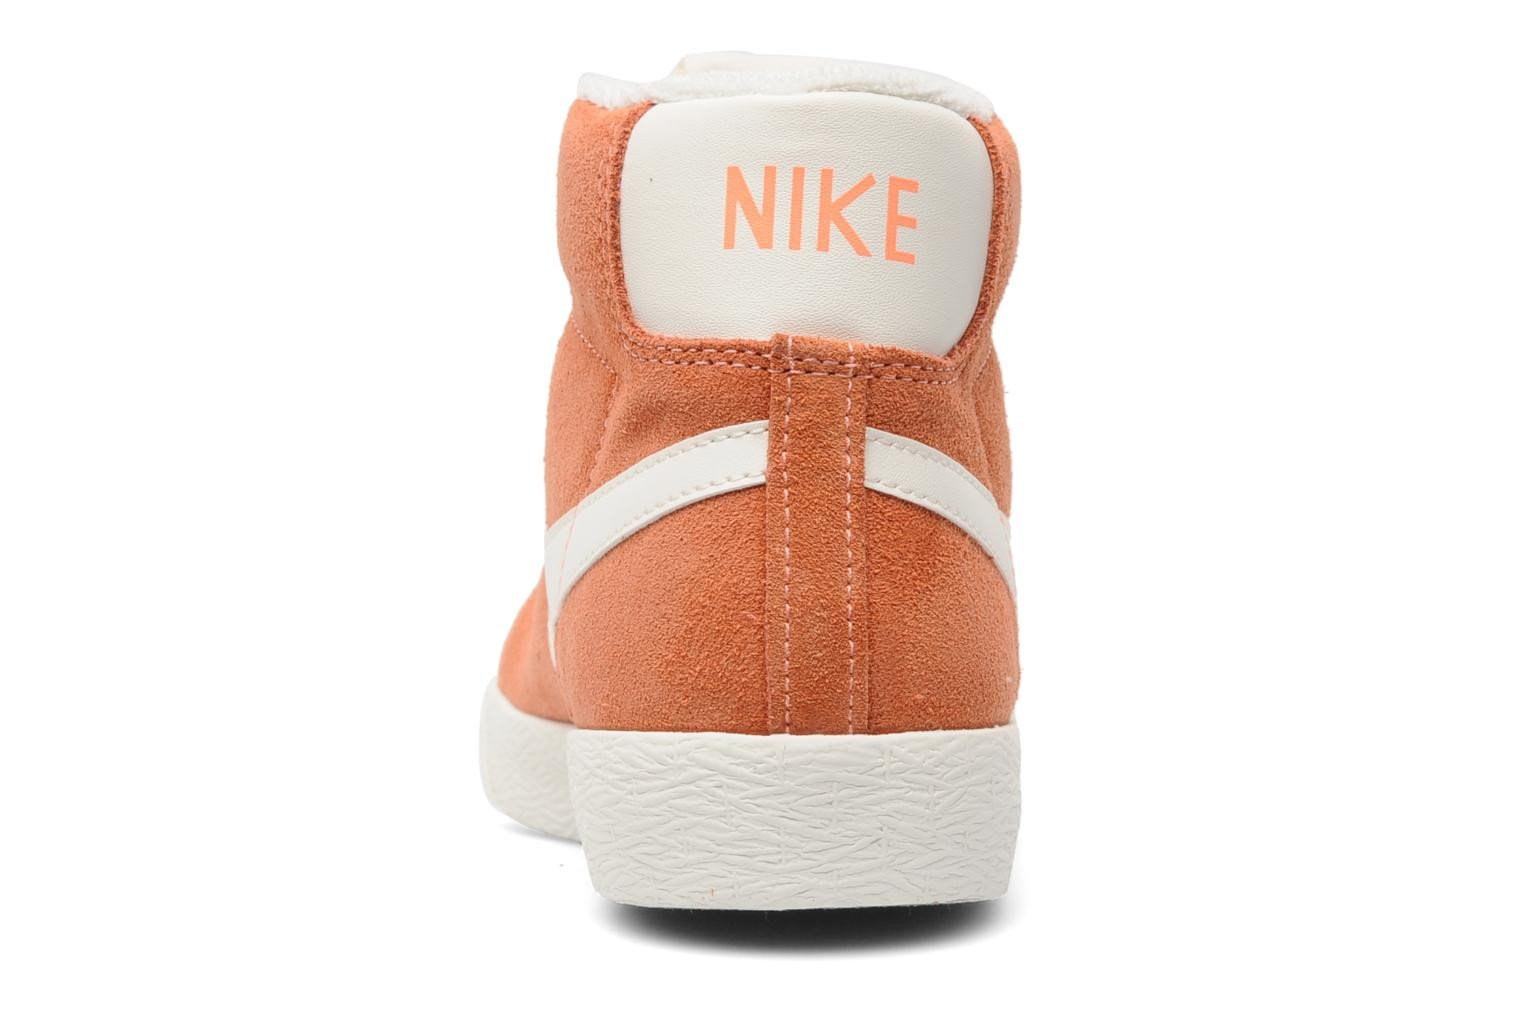 Nike WMNS Blazer Mid Suede Vintage Atomic Pink Sail Womens High Top Sneakers